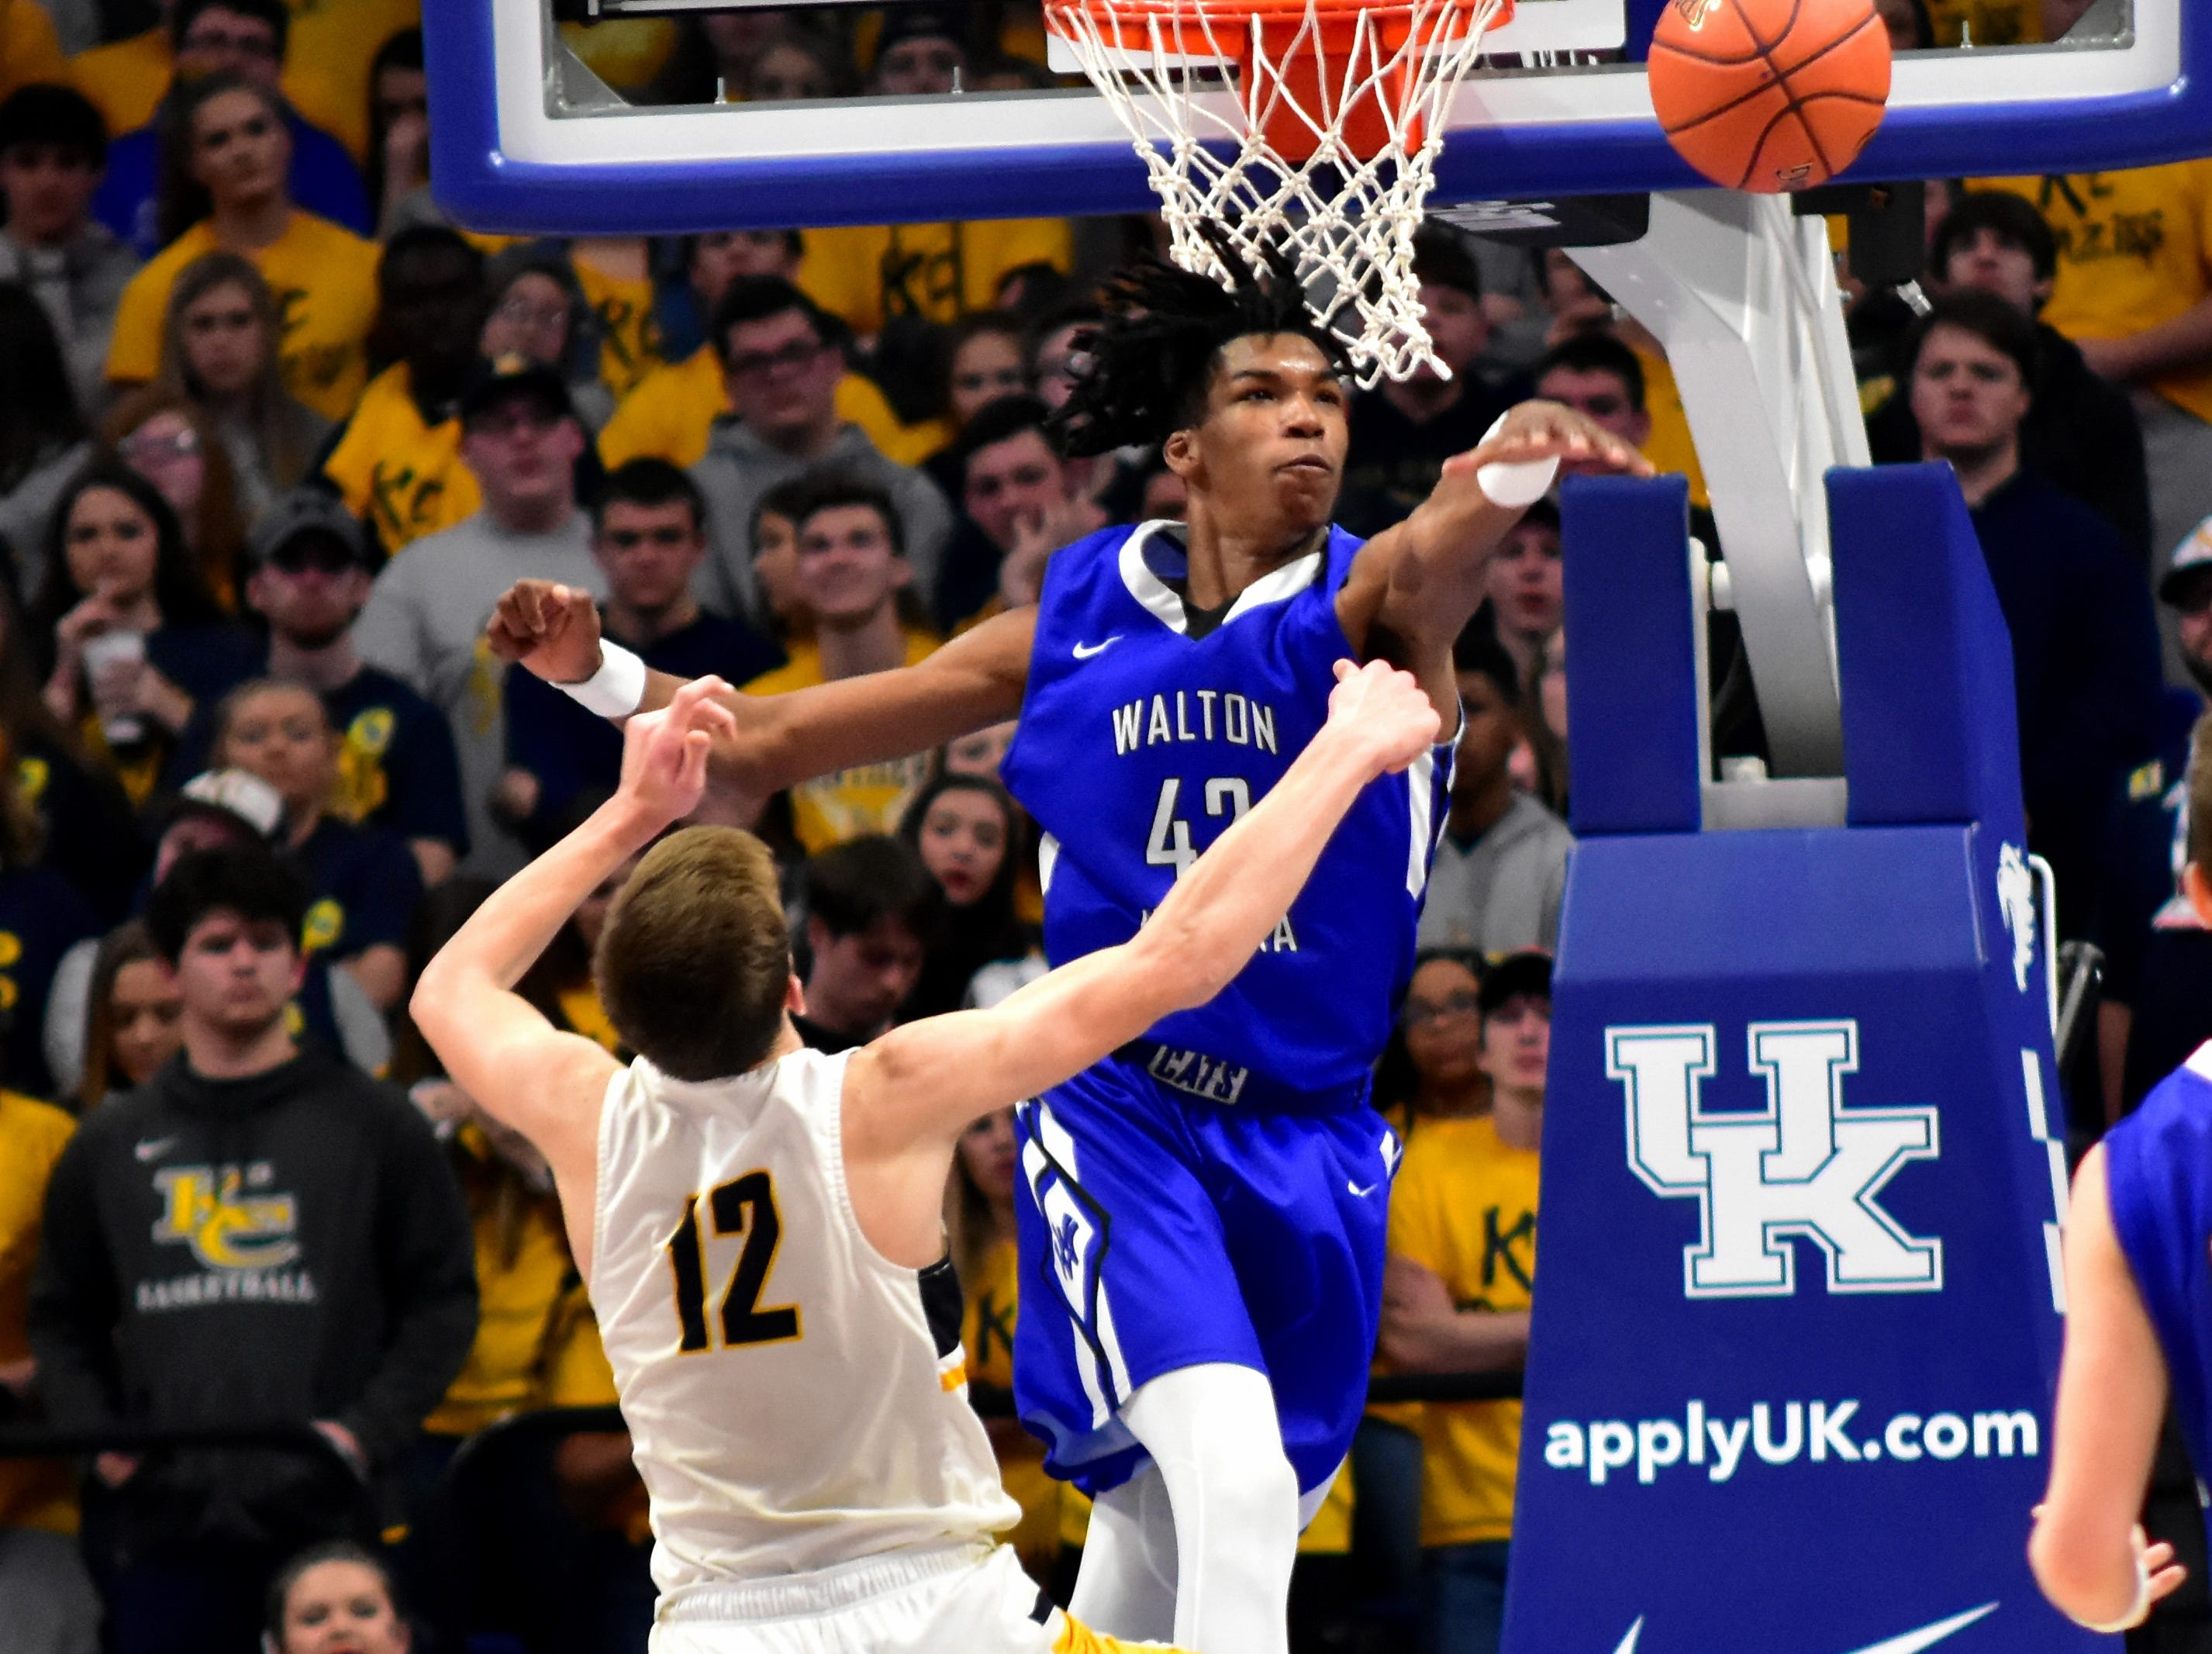 Dieonte Miles of Walton Verona rejects a Knox Central shot with authority at the KHSAA Sweet 16 Tournament at Rupp Arena in Lexington, KY, March 6, 2019